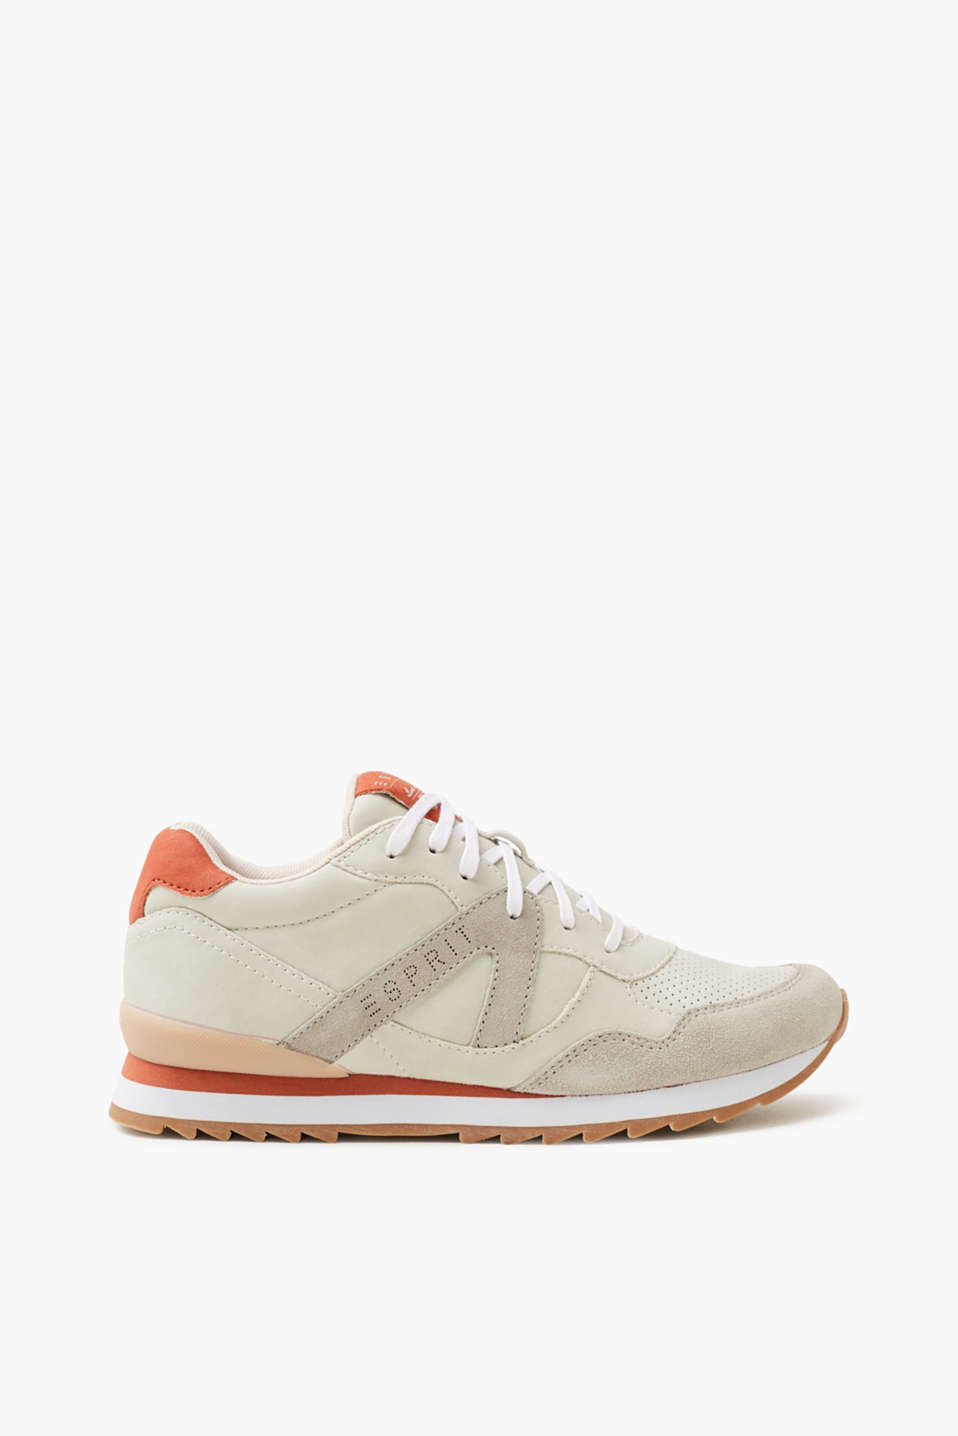 Esprit - Sporty lace-up trainers with a leather trim